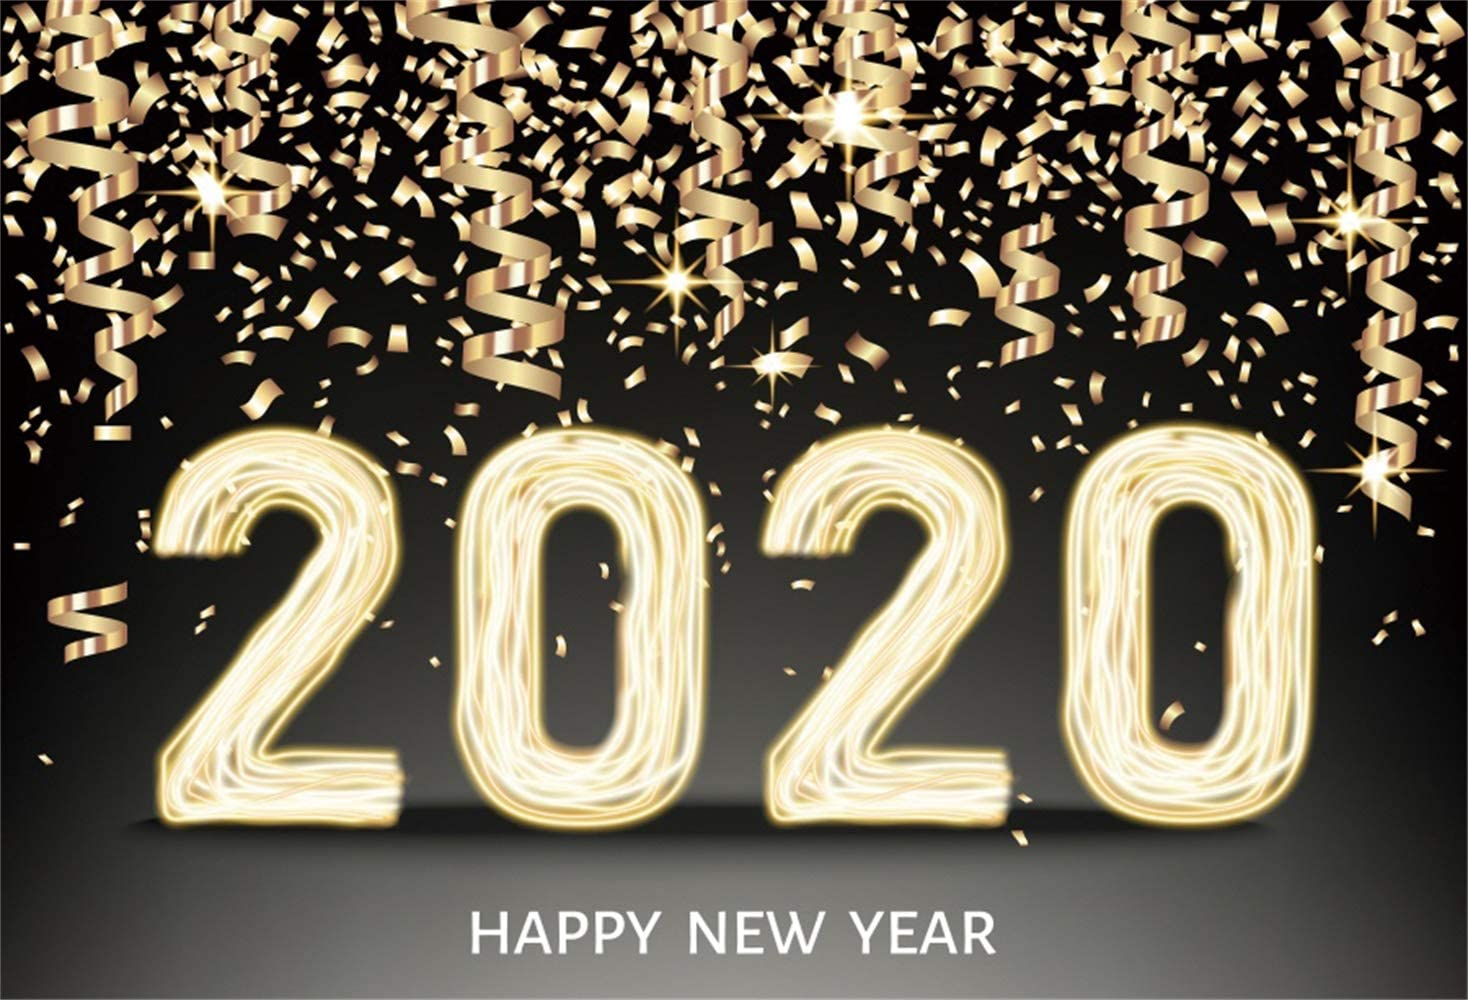 Leowefowa 20x10ft Happy New Year 2020 Backdrop Vinyl Sparkling Fireworks Vintage Clock Dial Countdown Dreamlike Bokeh Haloes Photography Background New Year Carnival Party Banner Wallpaper